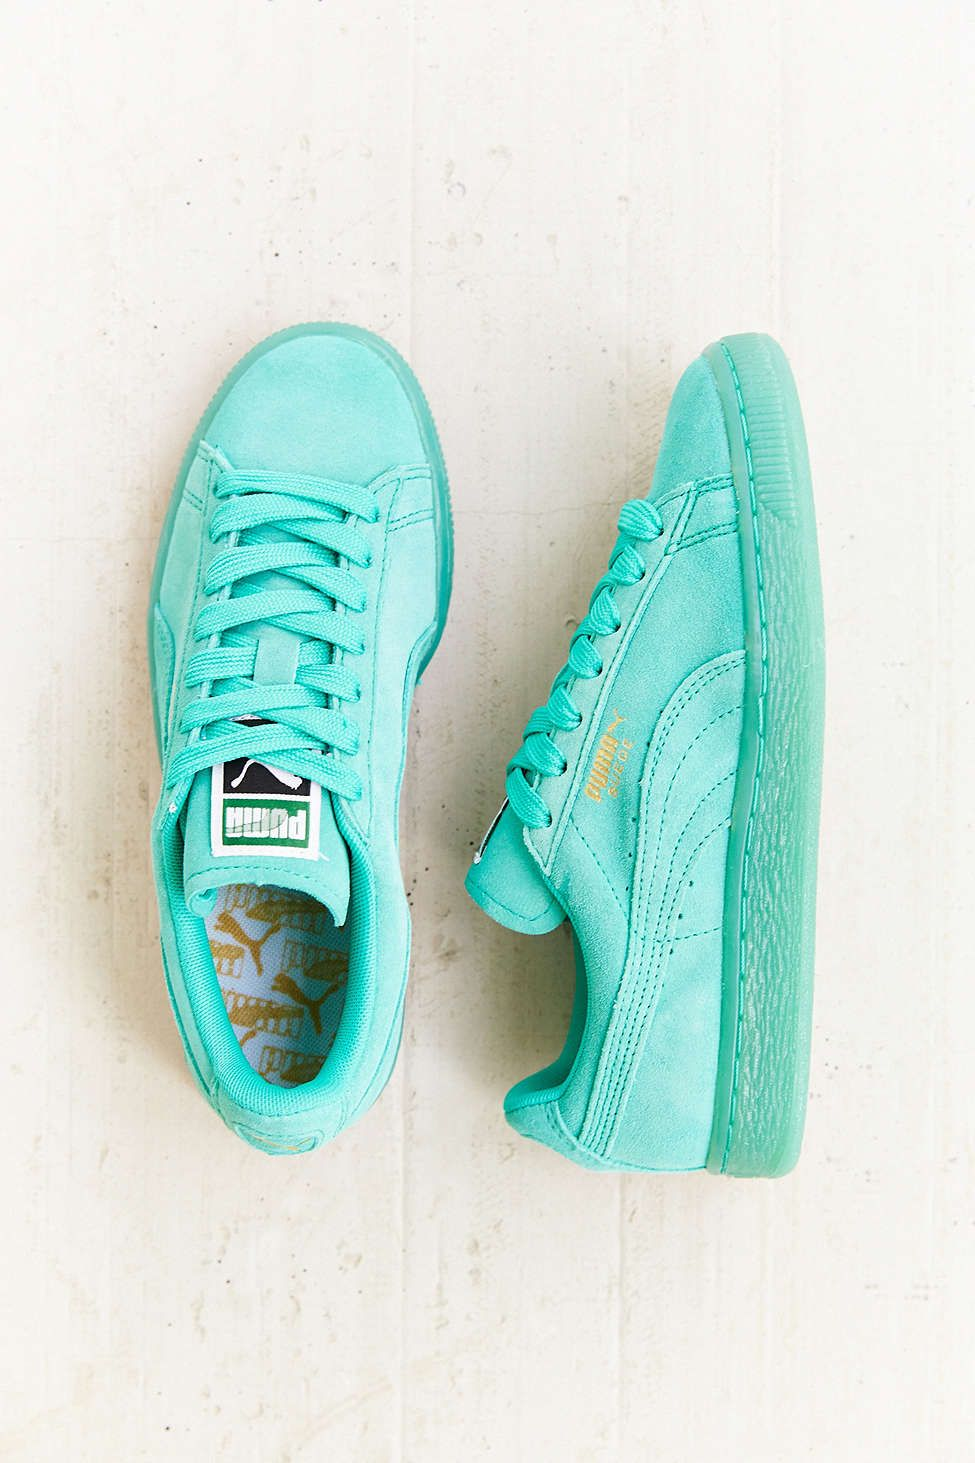 Suede Pinterest Turquoise Puma Chaussure Monochrome Shoes fx5IwPq